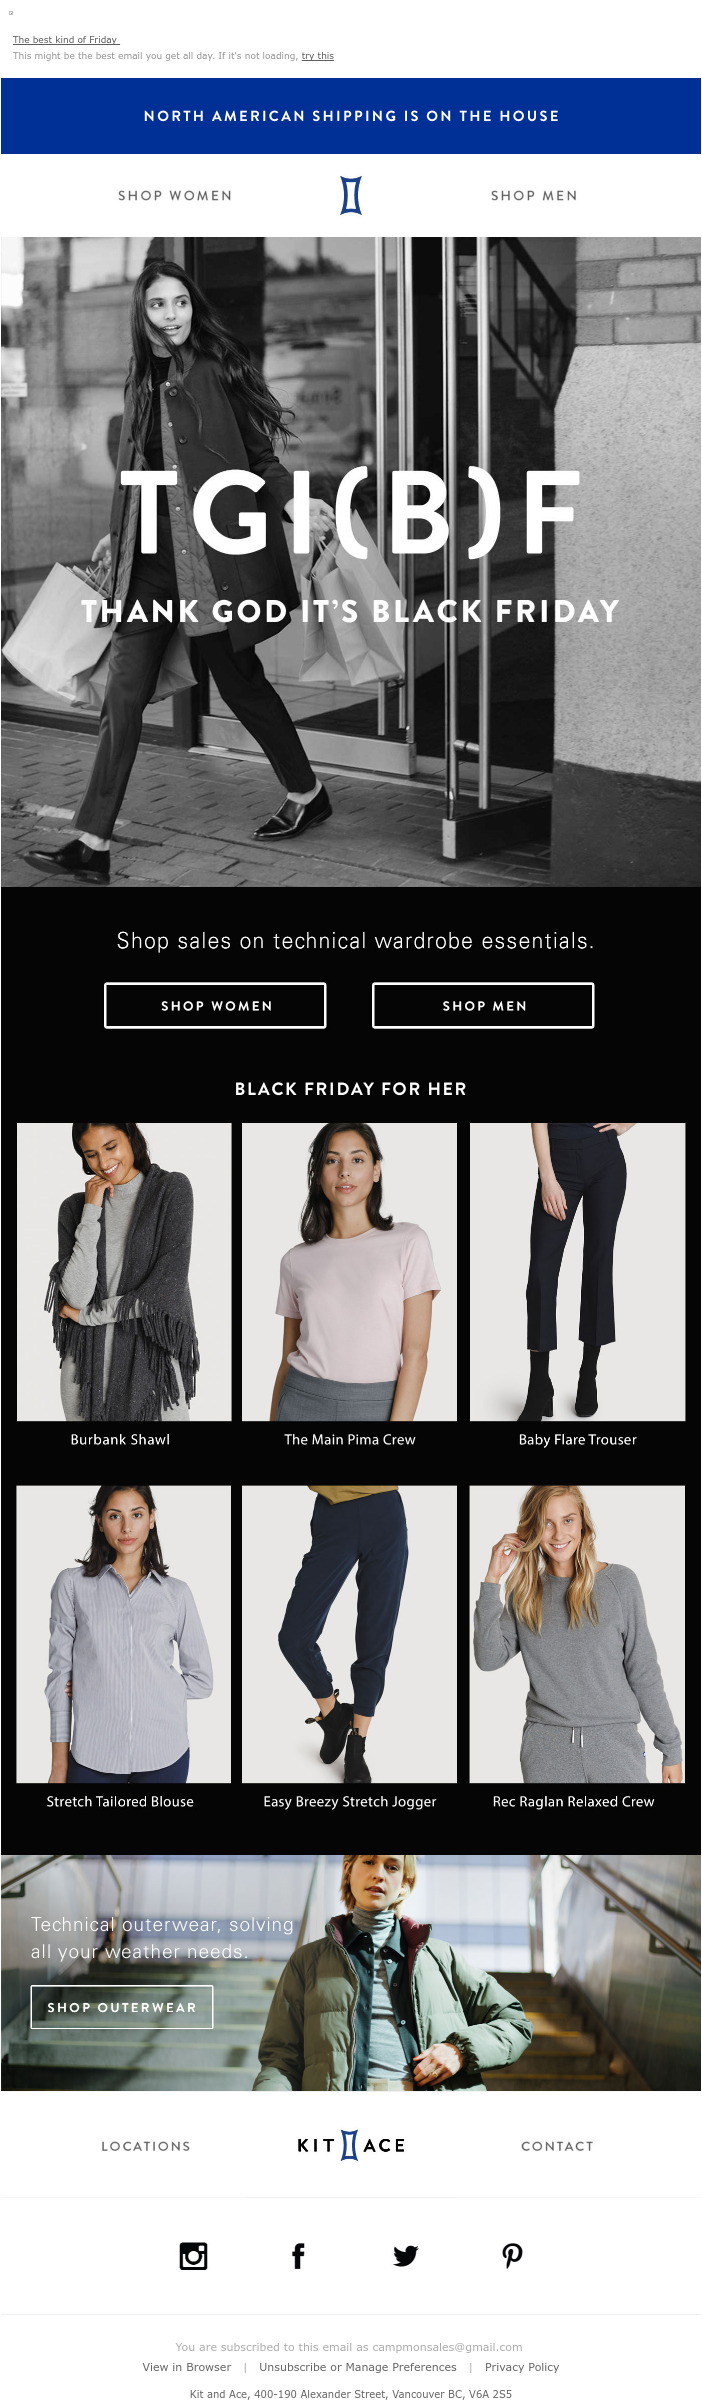 Black Friday email campaign from Kit and Ace